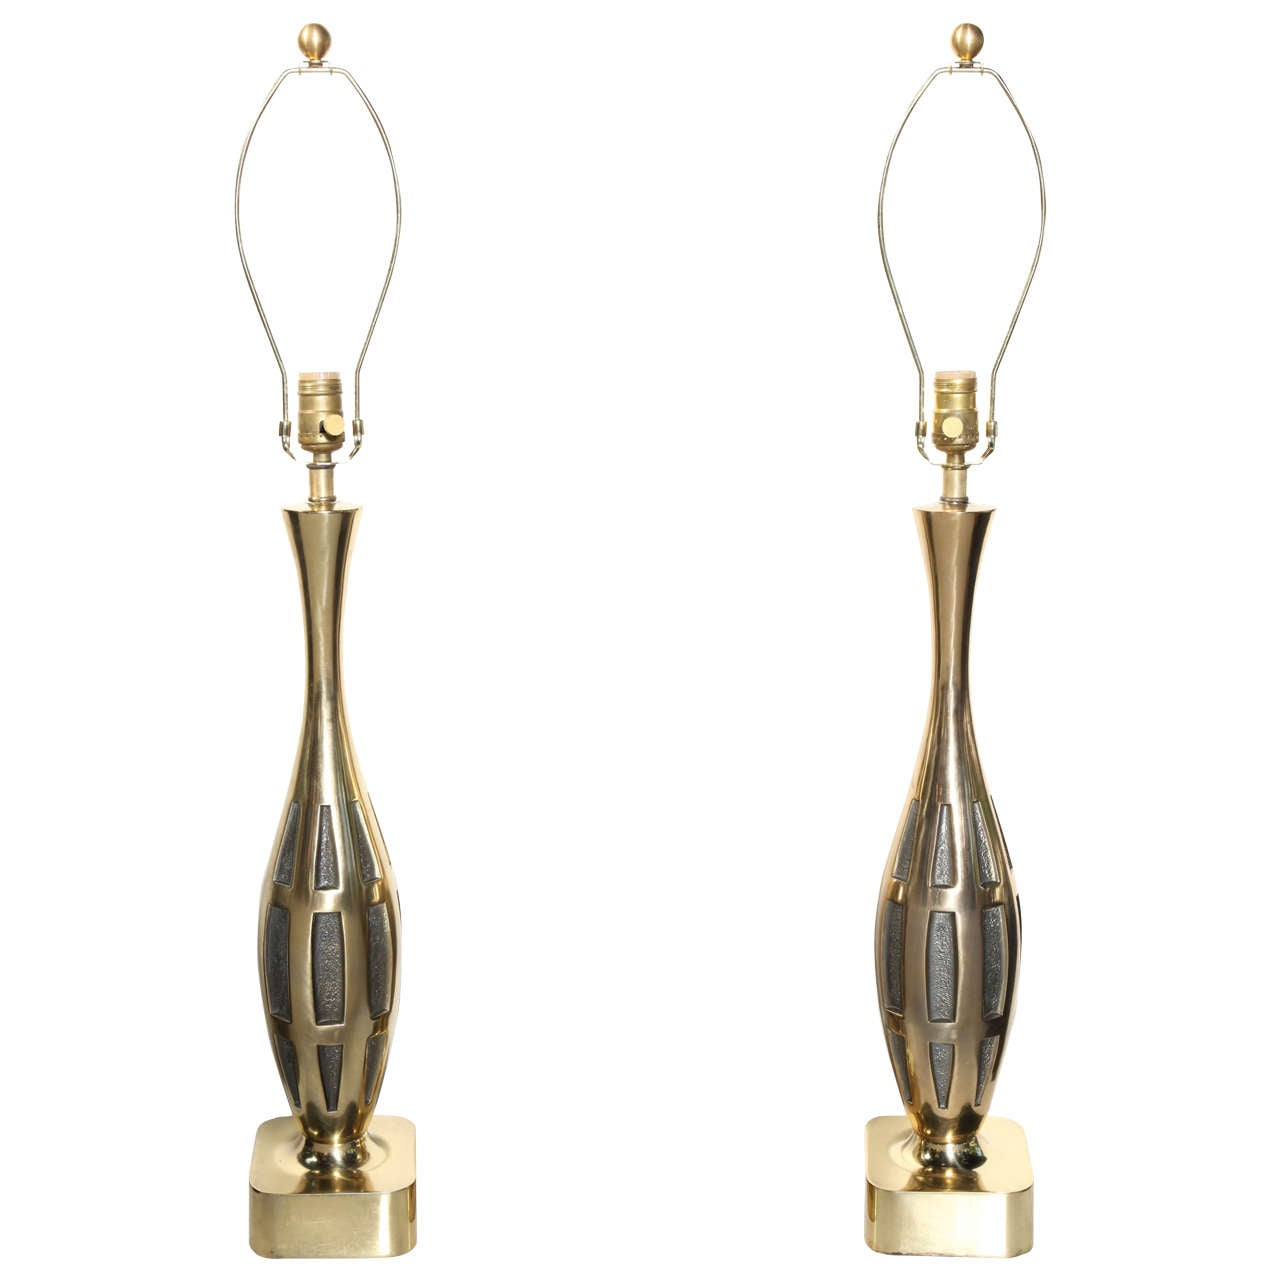 Pair of Westwood Studios Brutalist Brass Table Lamps, circa 1950s